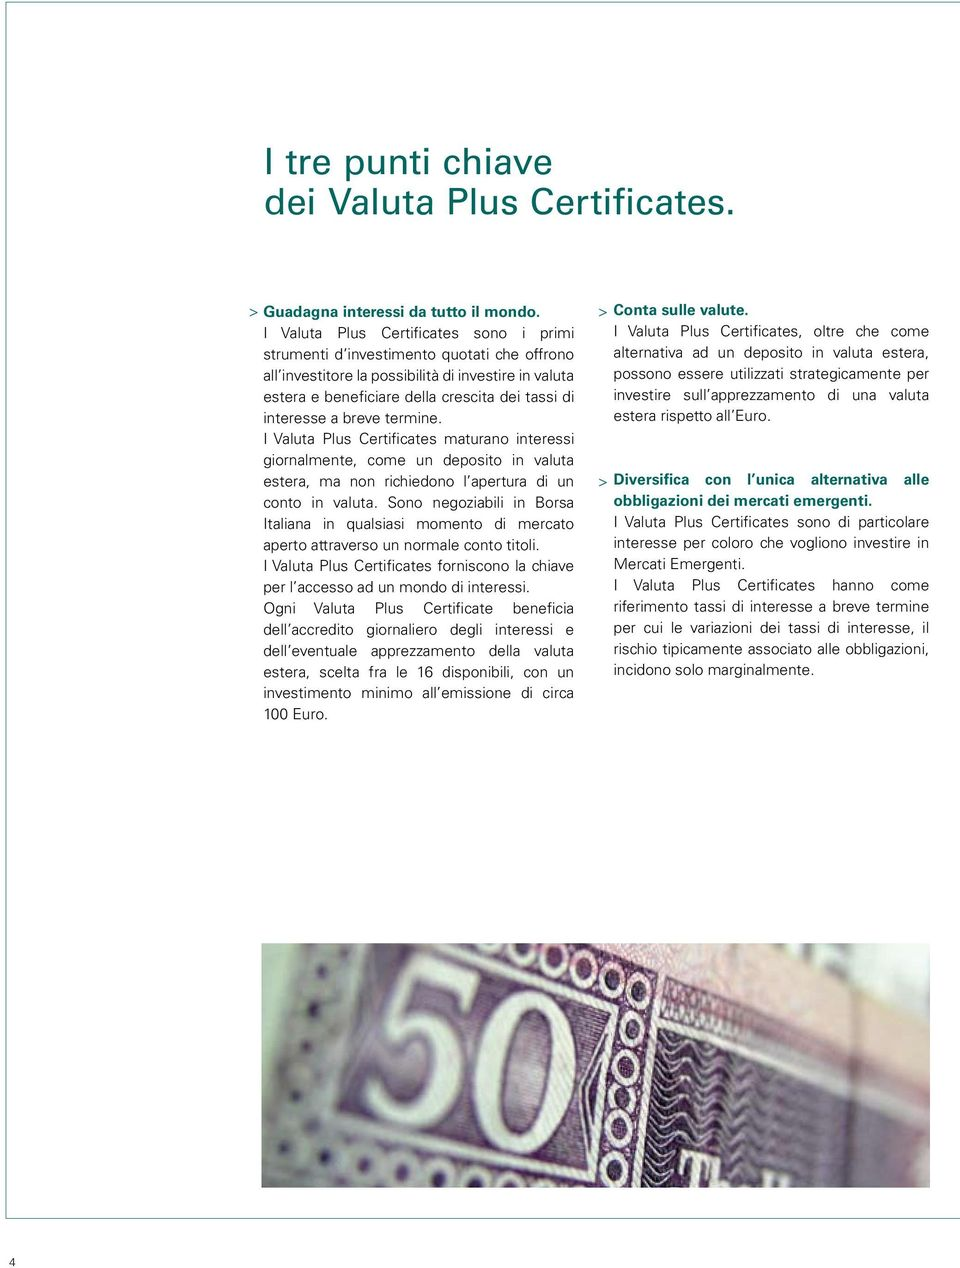 a breve termine. I Valuta Plus Certificates maturano interessi giornalmente, come un deposito in valuta estera, ma non richiedono l apertura di un > conto in valuta.